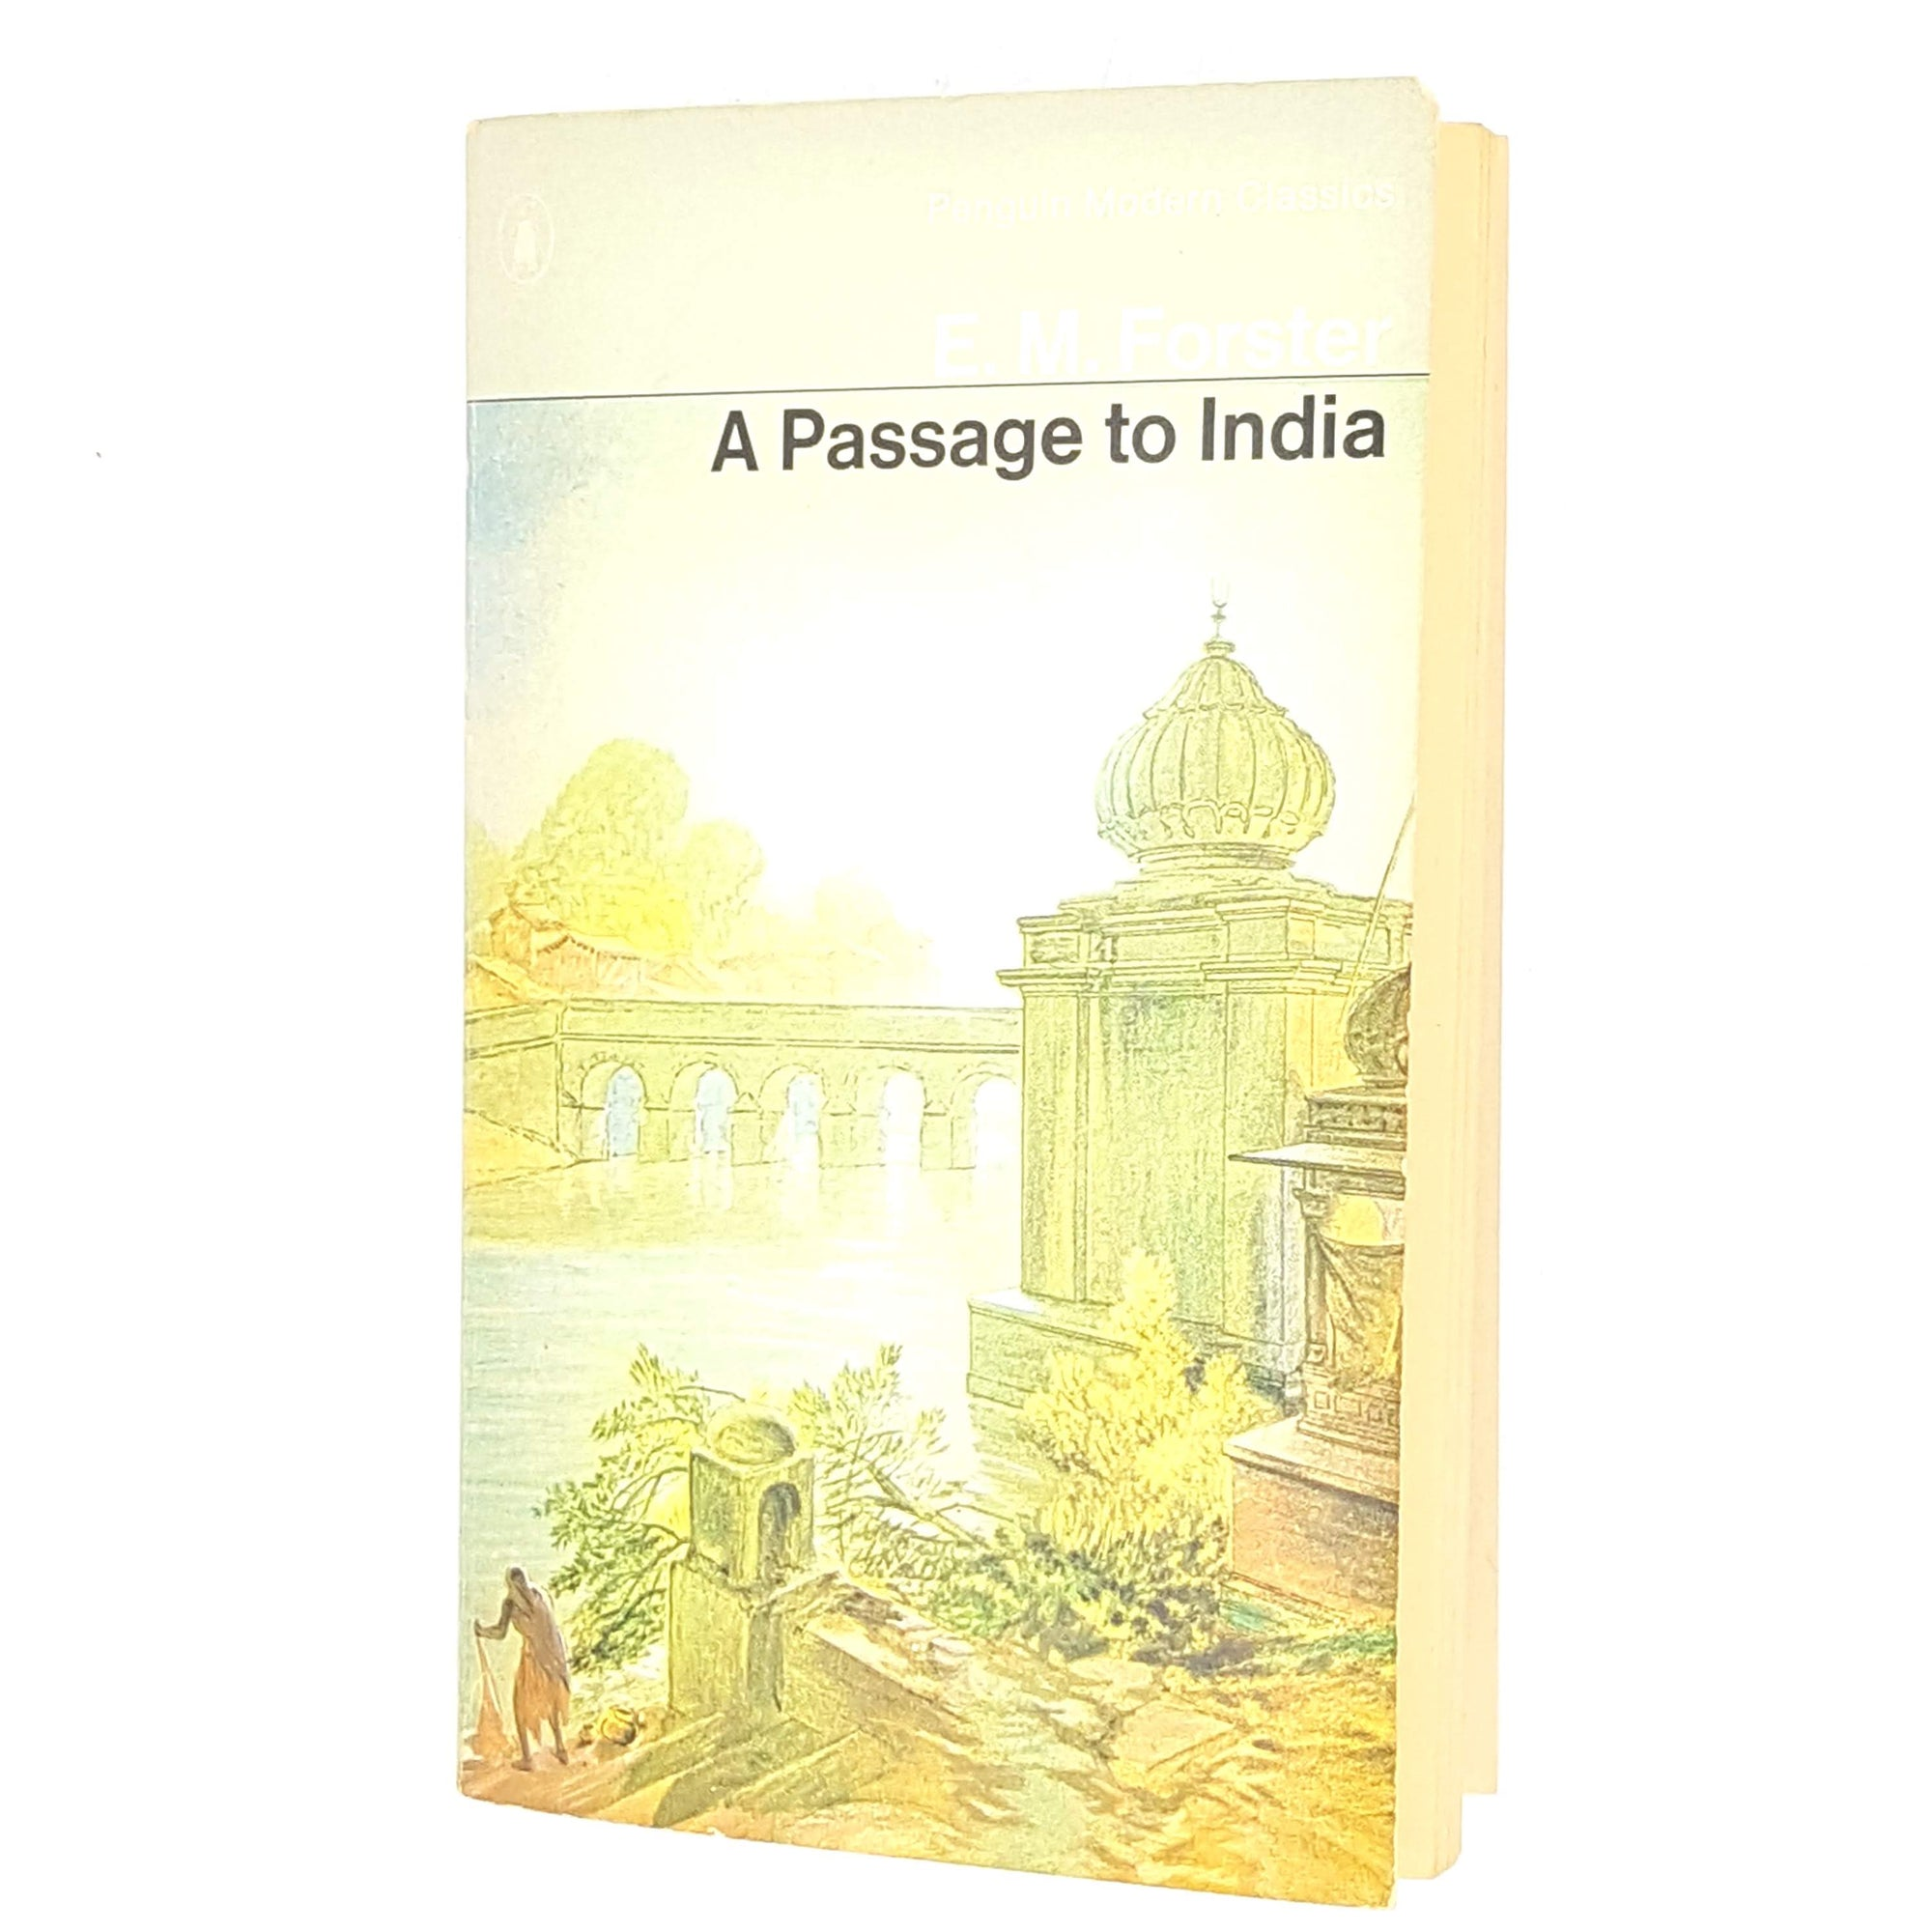 classic-antique-e-m-forster-1970-penguin-decorative-grey-thrift-a-passage-to-india-country-house-library-white-modern-classics-vintage-old-books-patterned-